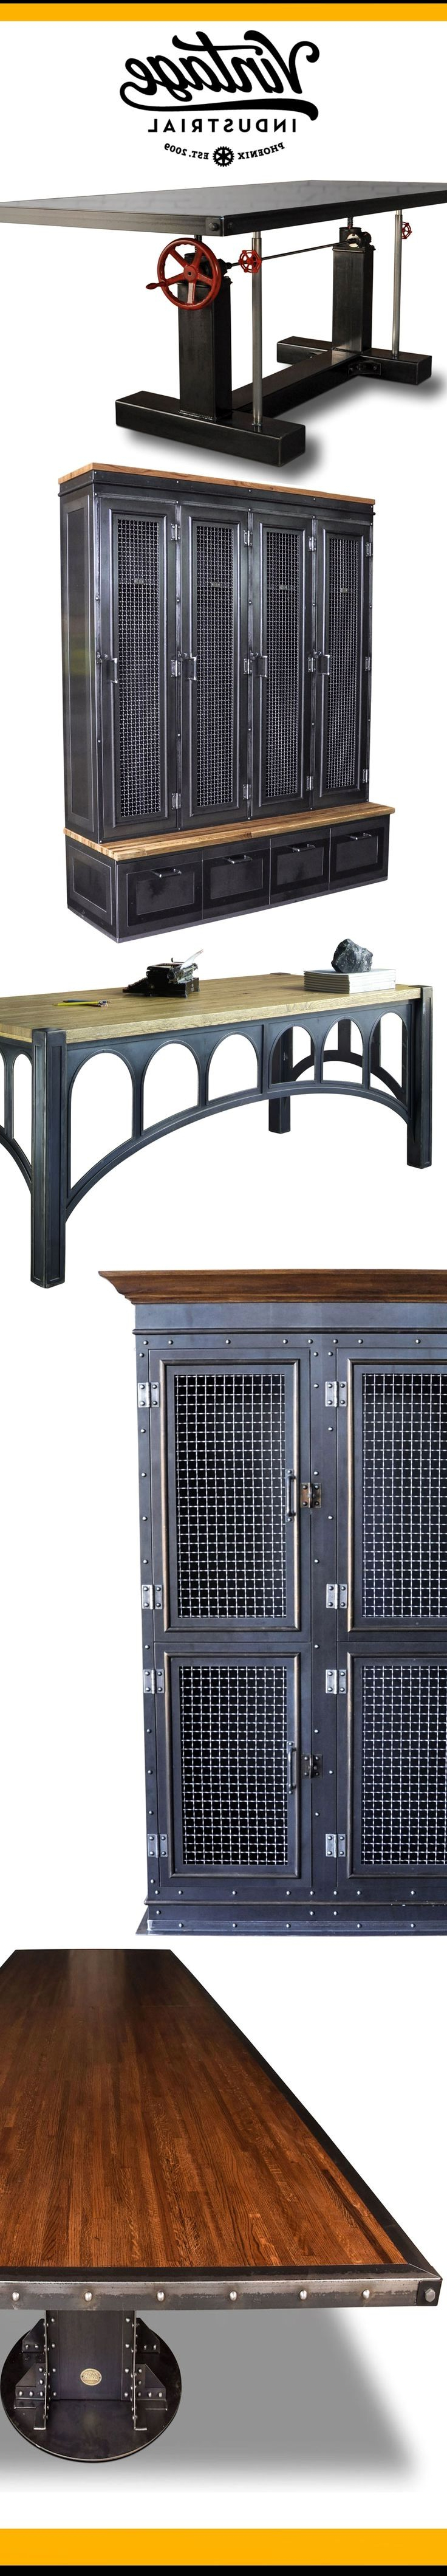 39 Best Autobahn Furniture Images On Pinterest | Industrial Intended For Parsons Walnut Top & Brass Base 48x16 Console Tables (View 20 of 20)